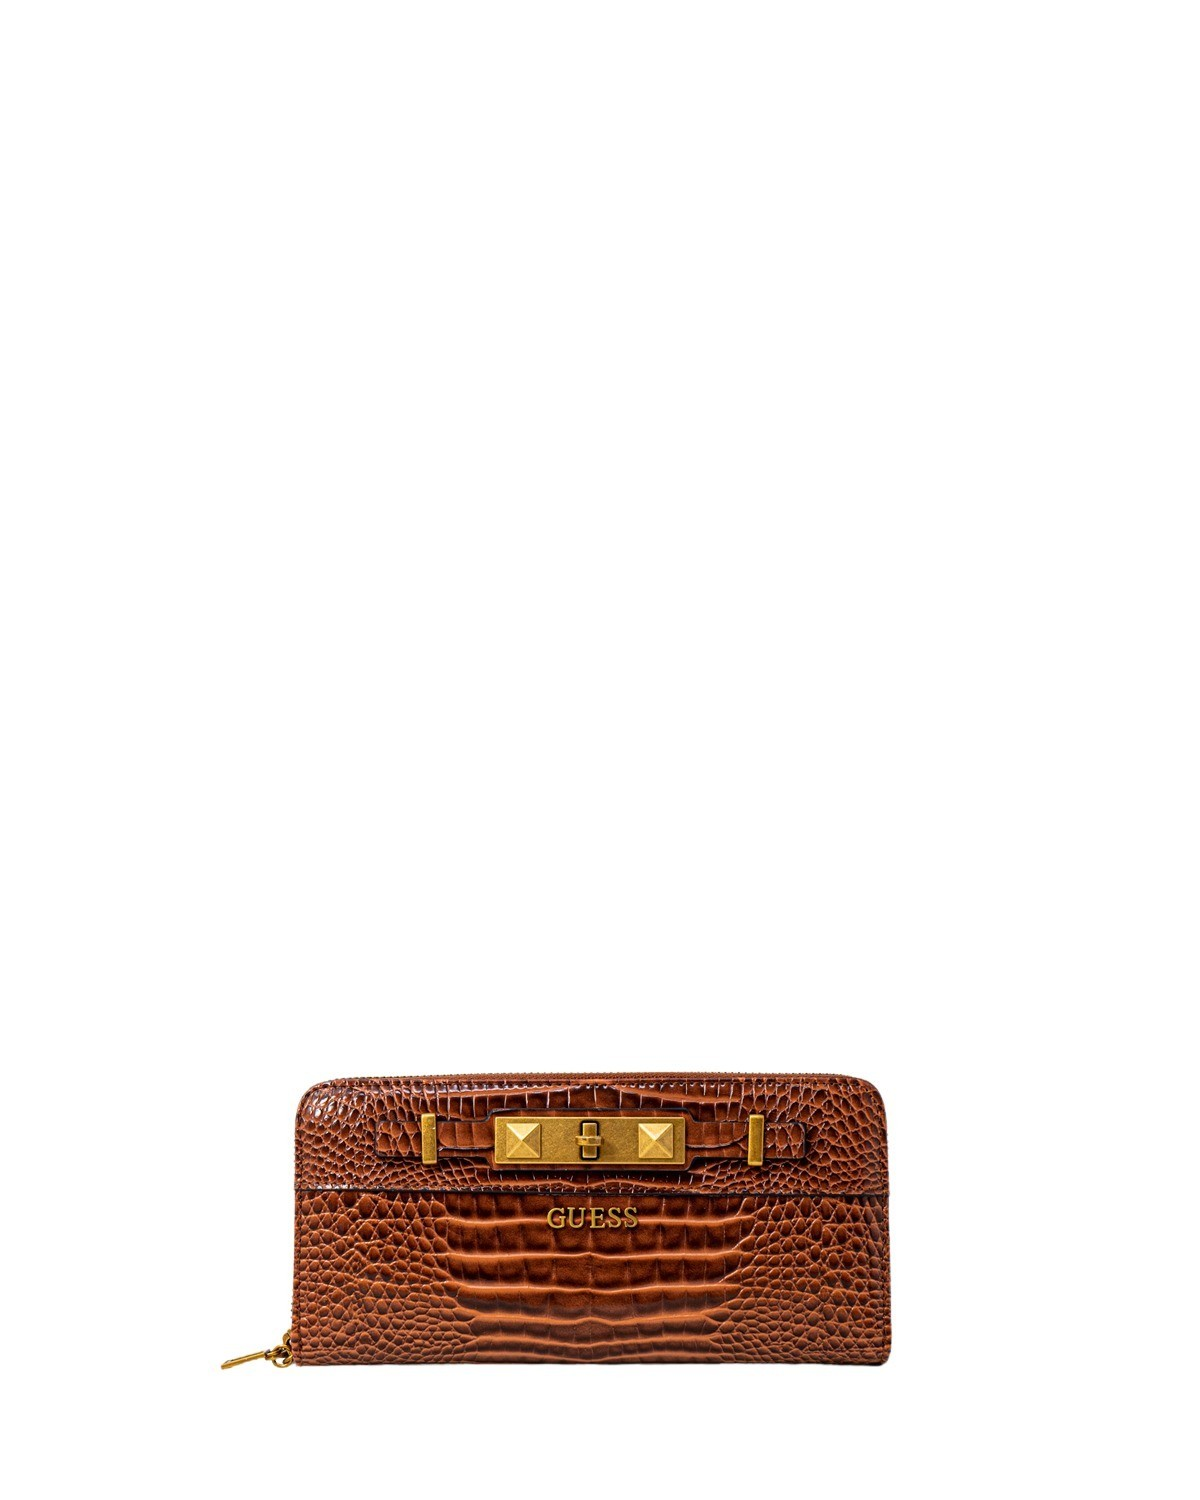 Guess Women's Wallet Various Colours 305880 - brown UNICA